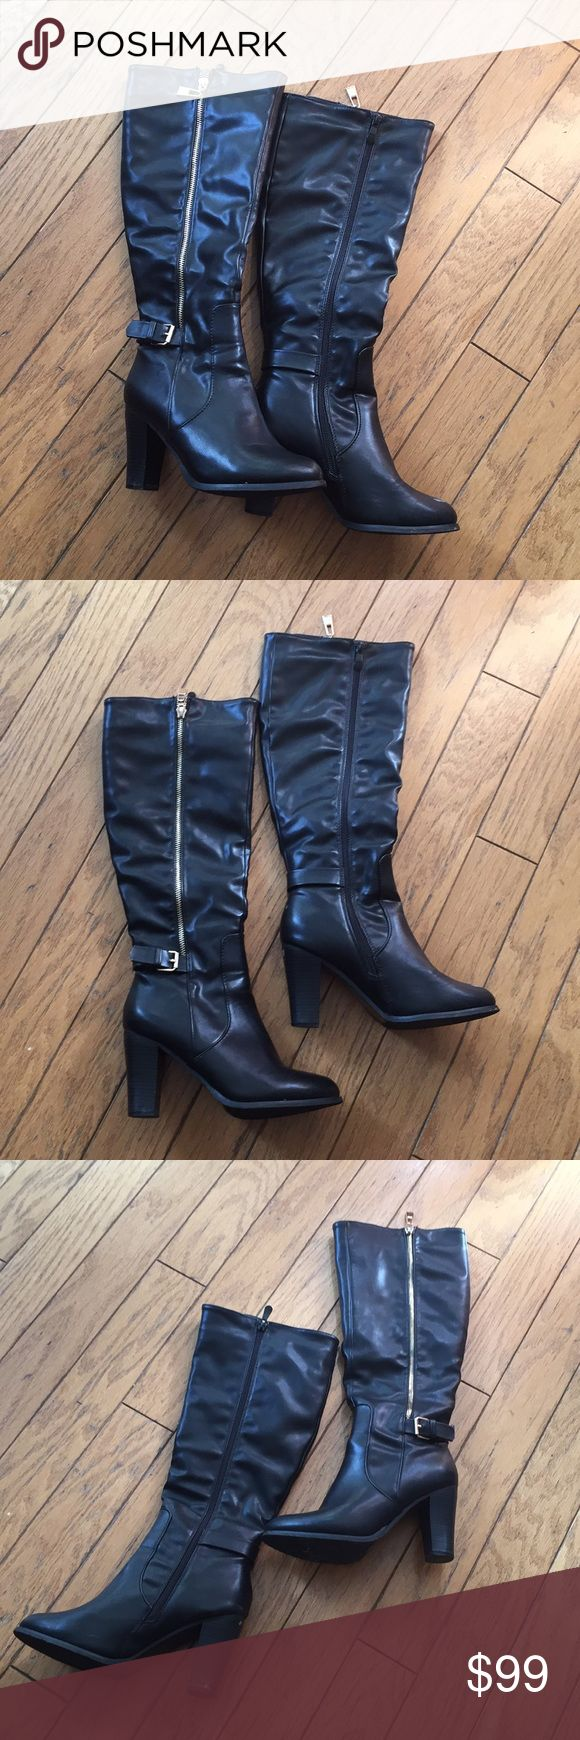 ALDO High Heeled Zip Up Over the Knee Boots Size 7 ALDO - Women's size 7 US. Like new only worn once a little too big for me. Over the knee style fit with sexy 3 inch heels. Black leather with gold zipper that goes all the way up. All bundles of 2 or more are automatically discounted by 20% ✨ Offers welcome! Aldo Shoes Heeled Boots